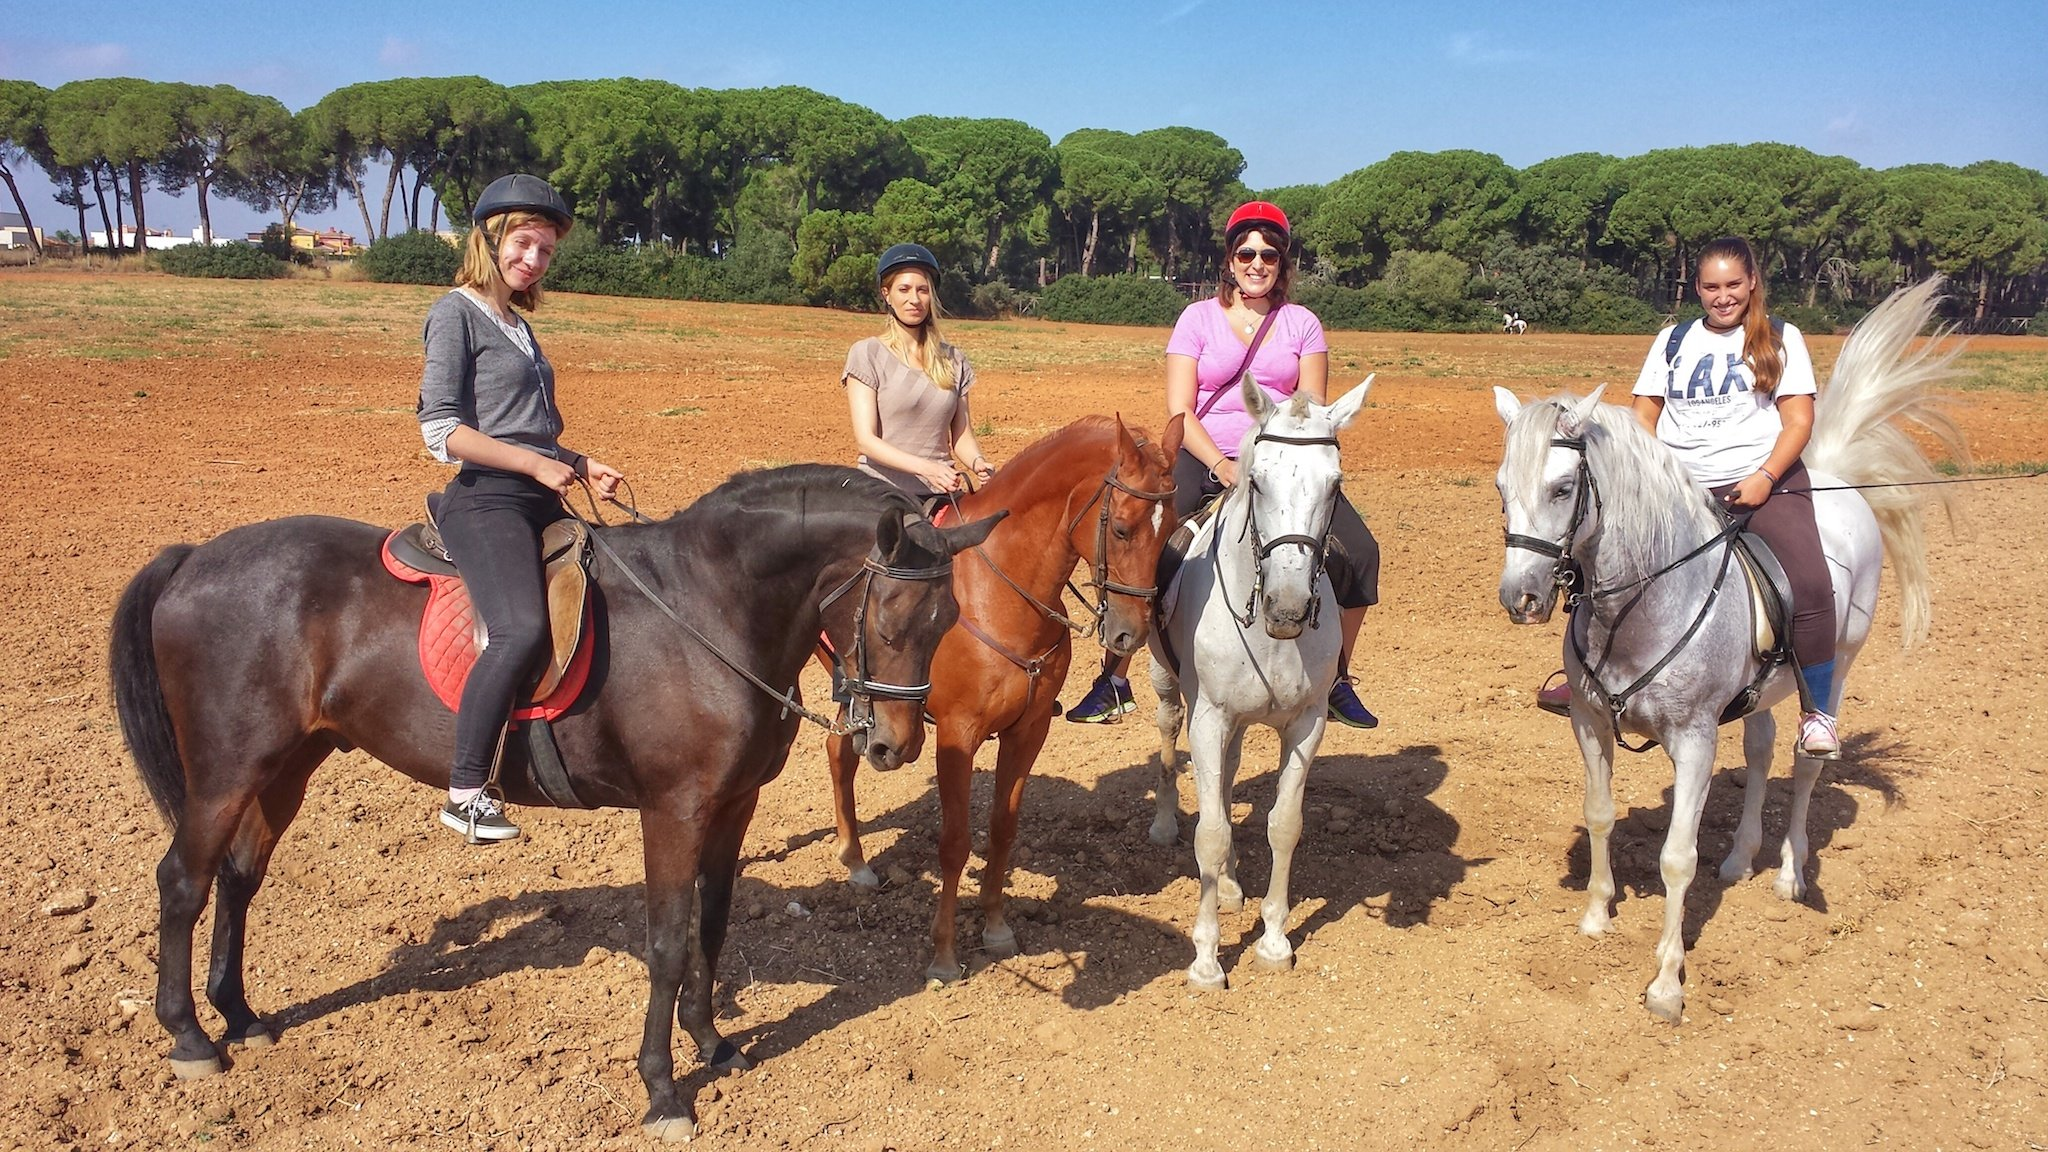 Take A Break And Enjoy The Andalusian Horseback Riding From Seville_71